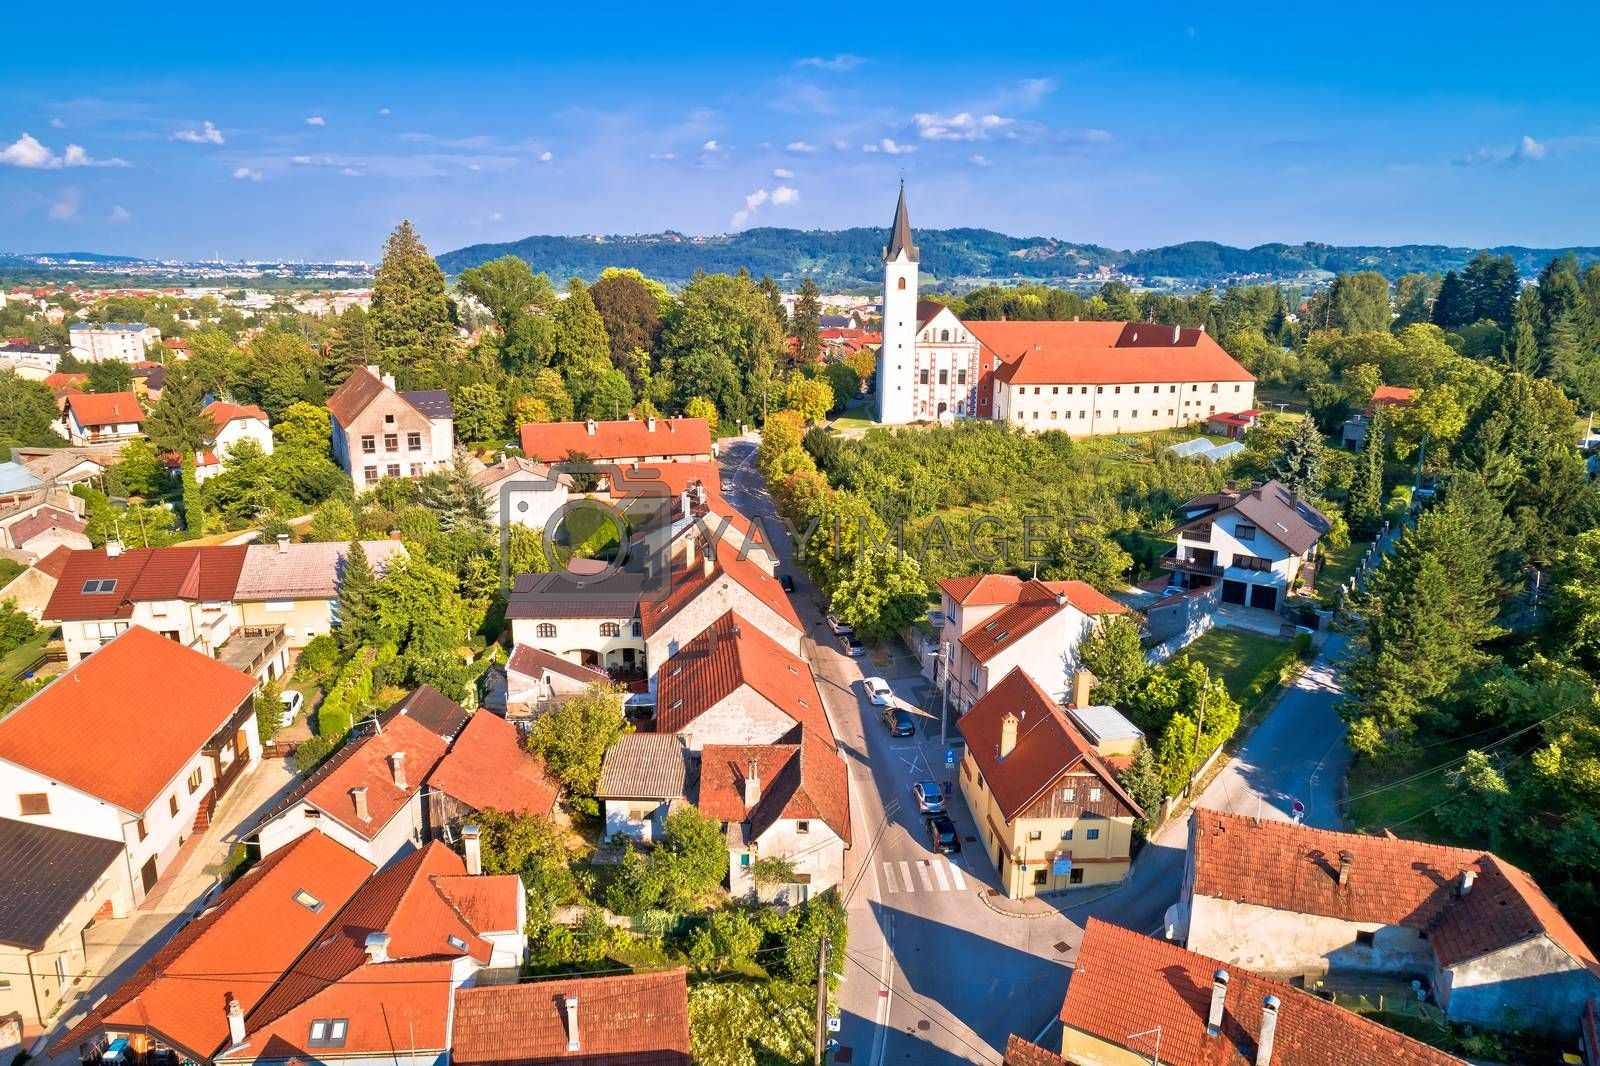 Green town of Samobor church and landscape aerial view, northern Croatia